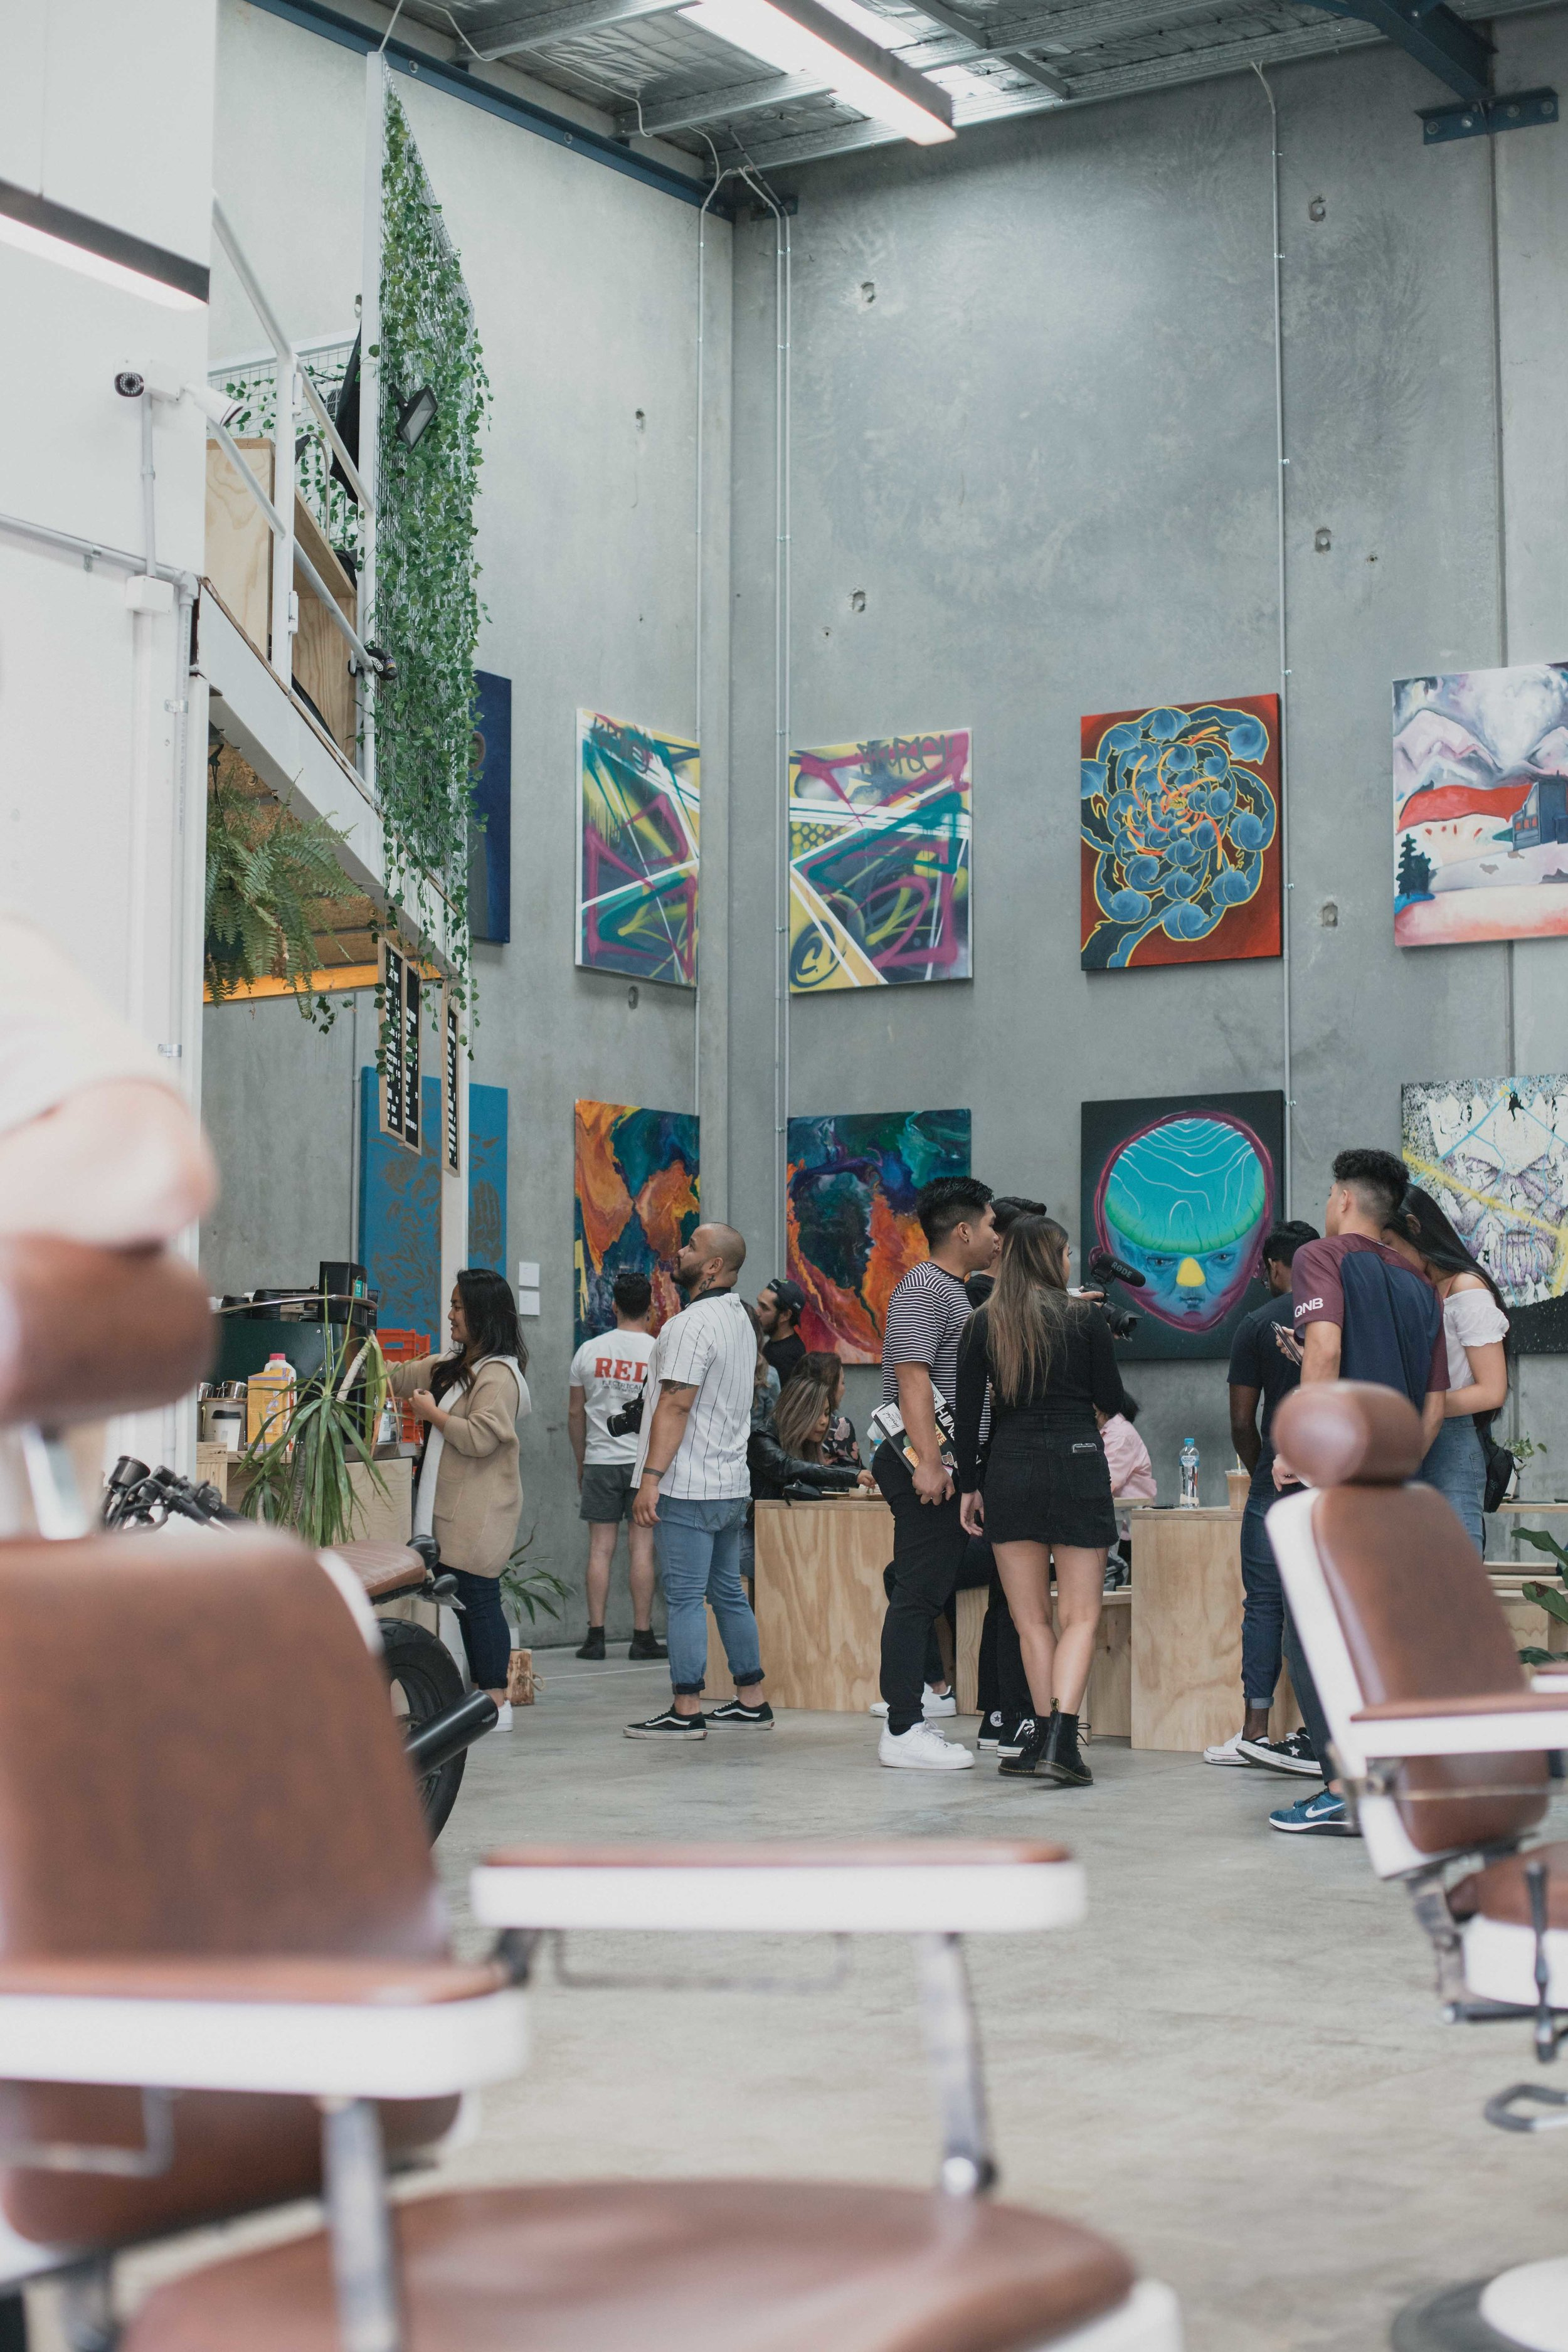 THE PALATE HAUS GALERY a cafe/art house, showcasing the creative mind of locals.